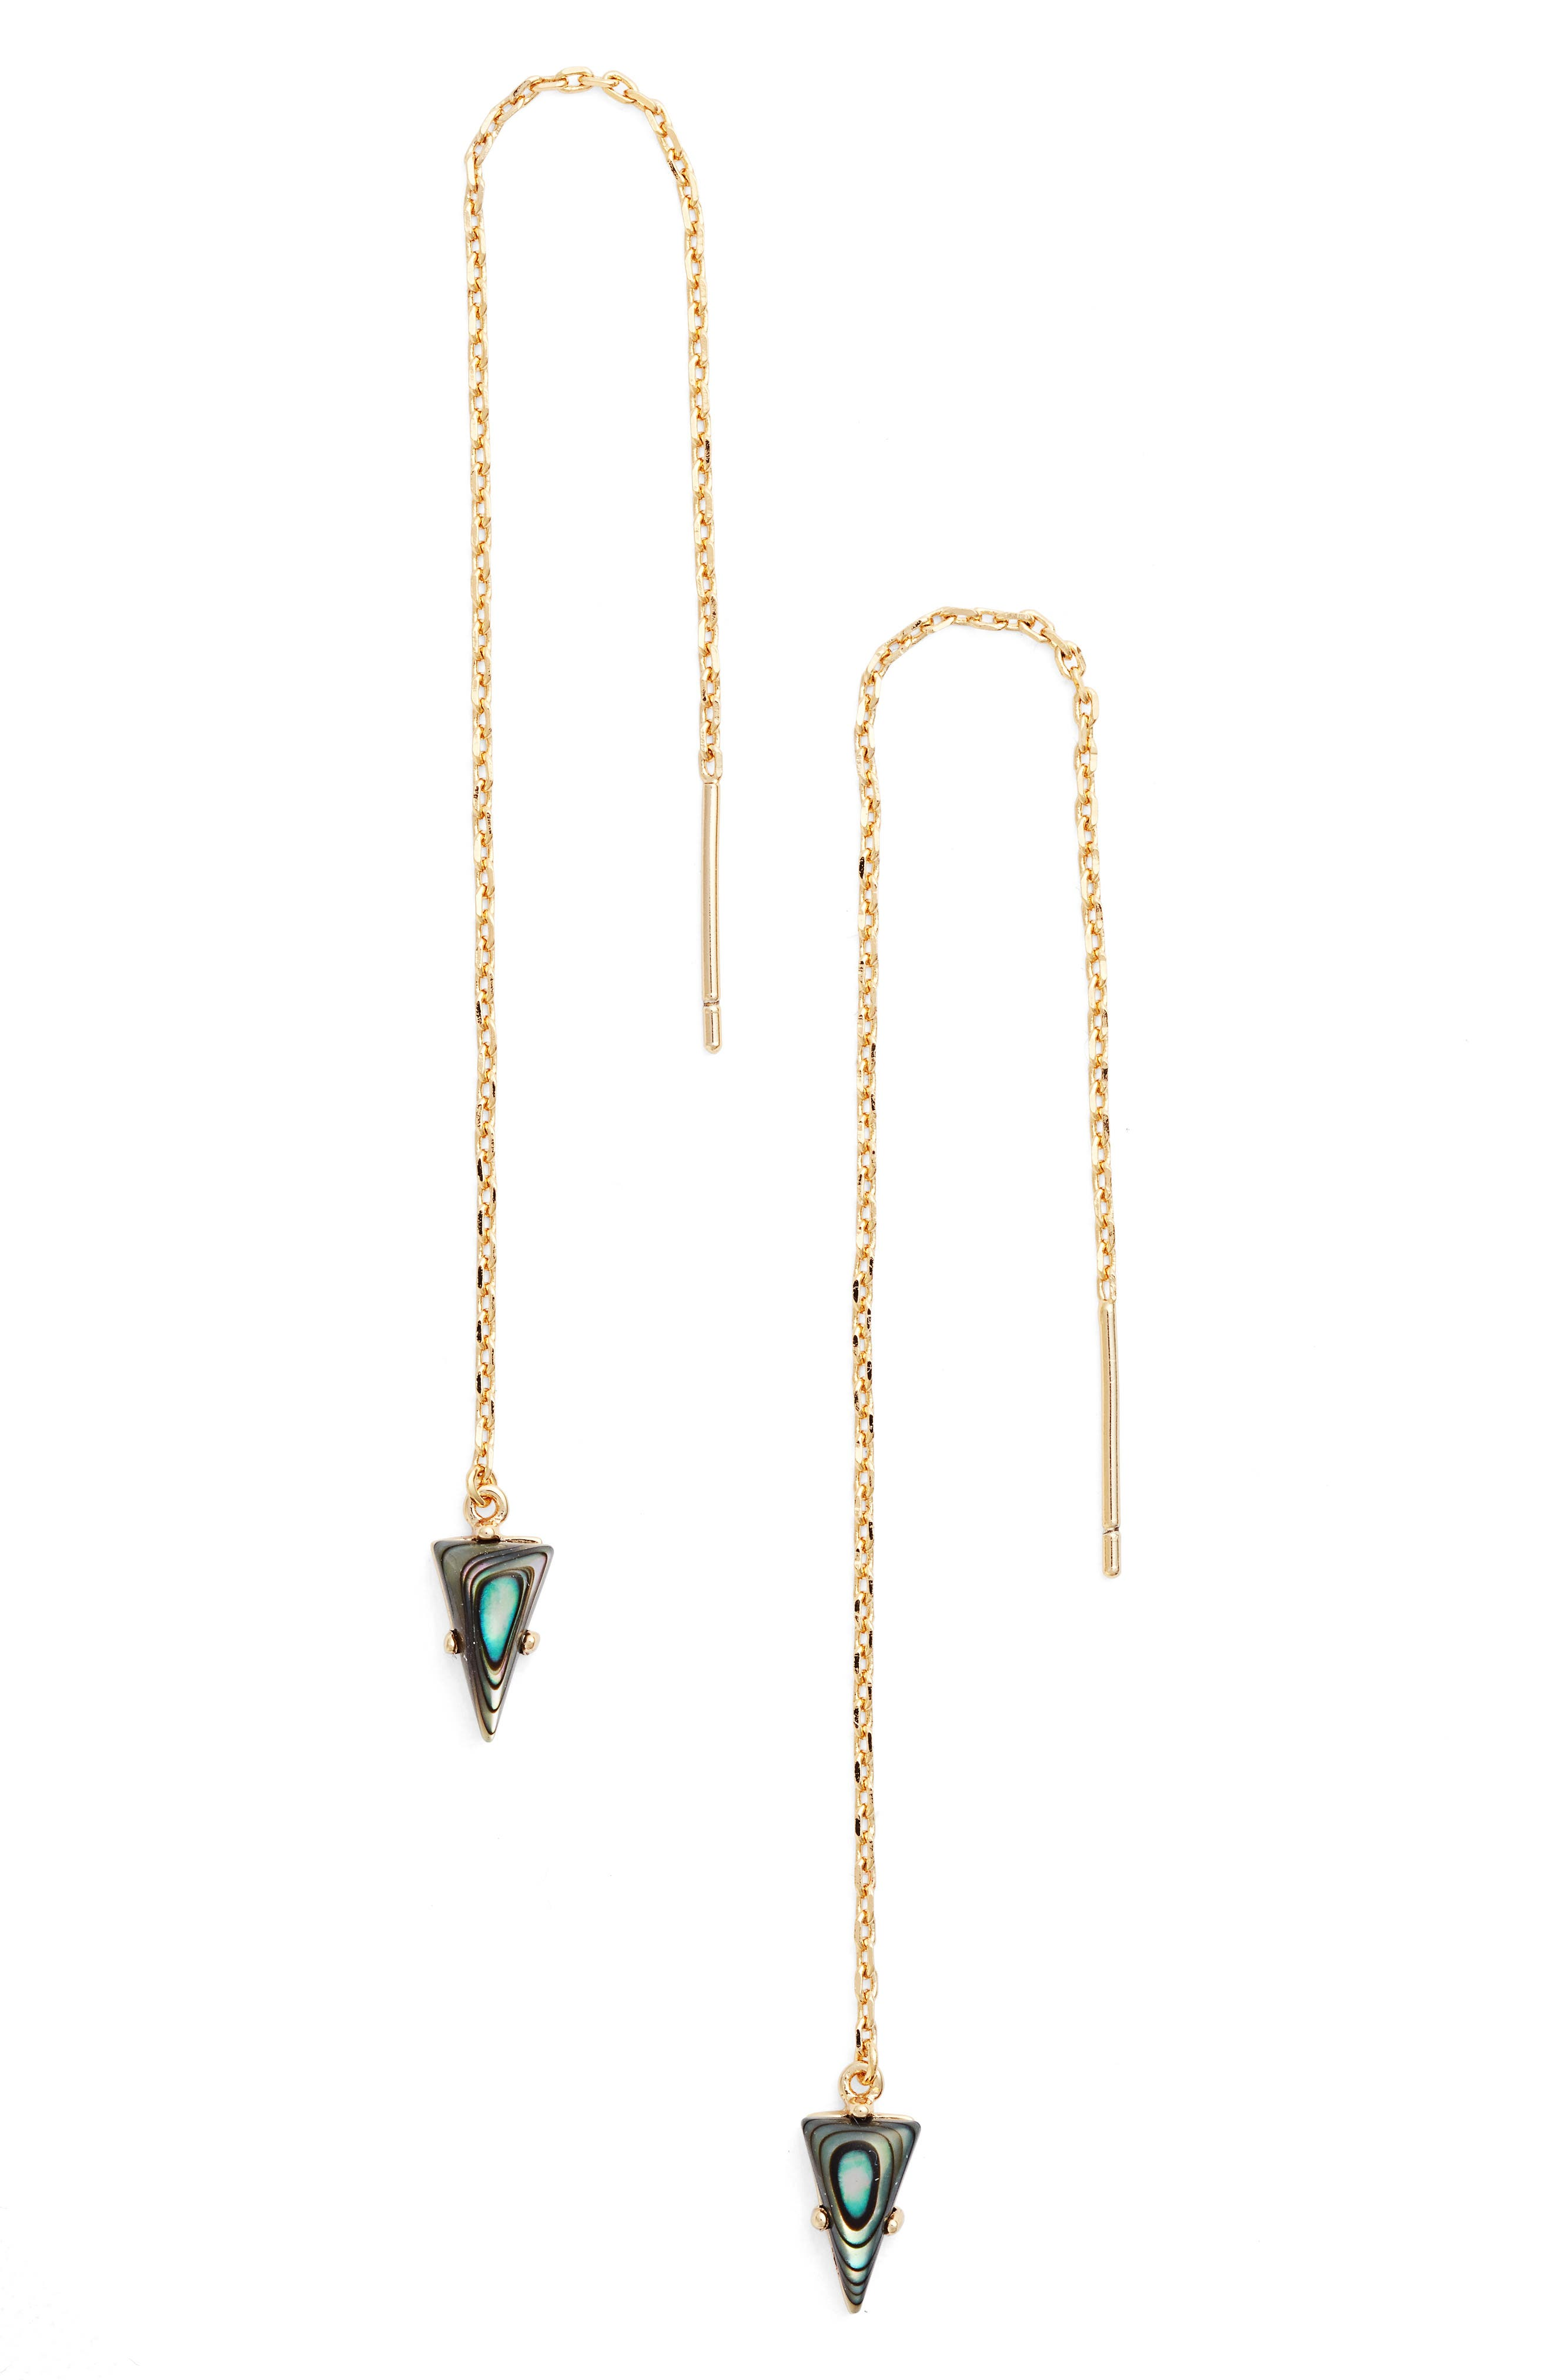 Triangle Gem Threader Earrings,                         Main,                         color, Yellow Gold/ Abalone